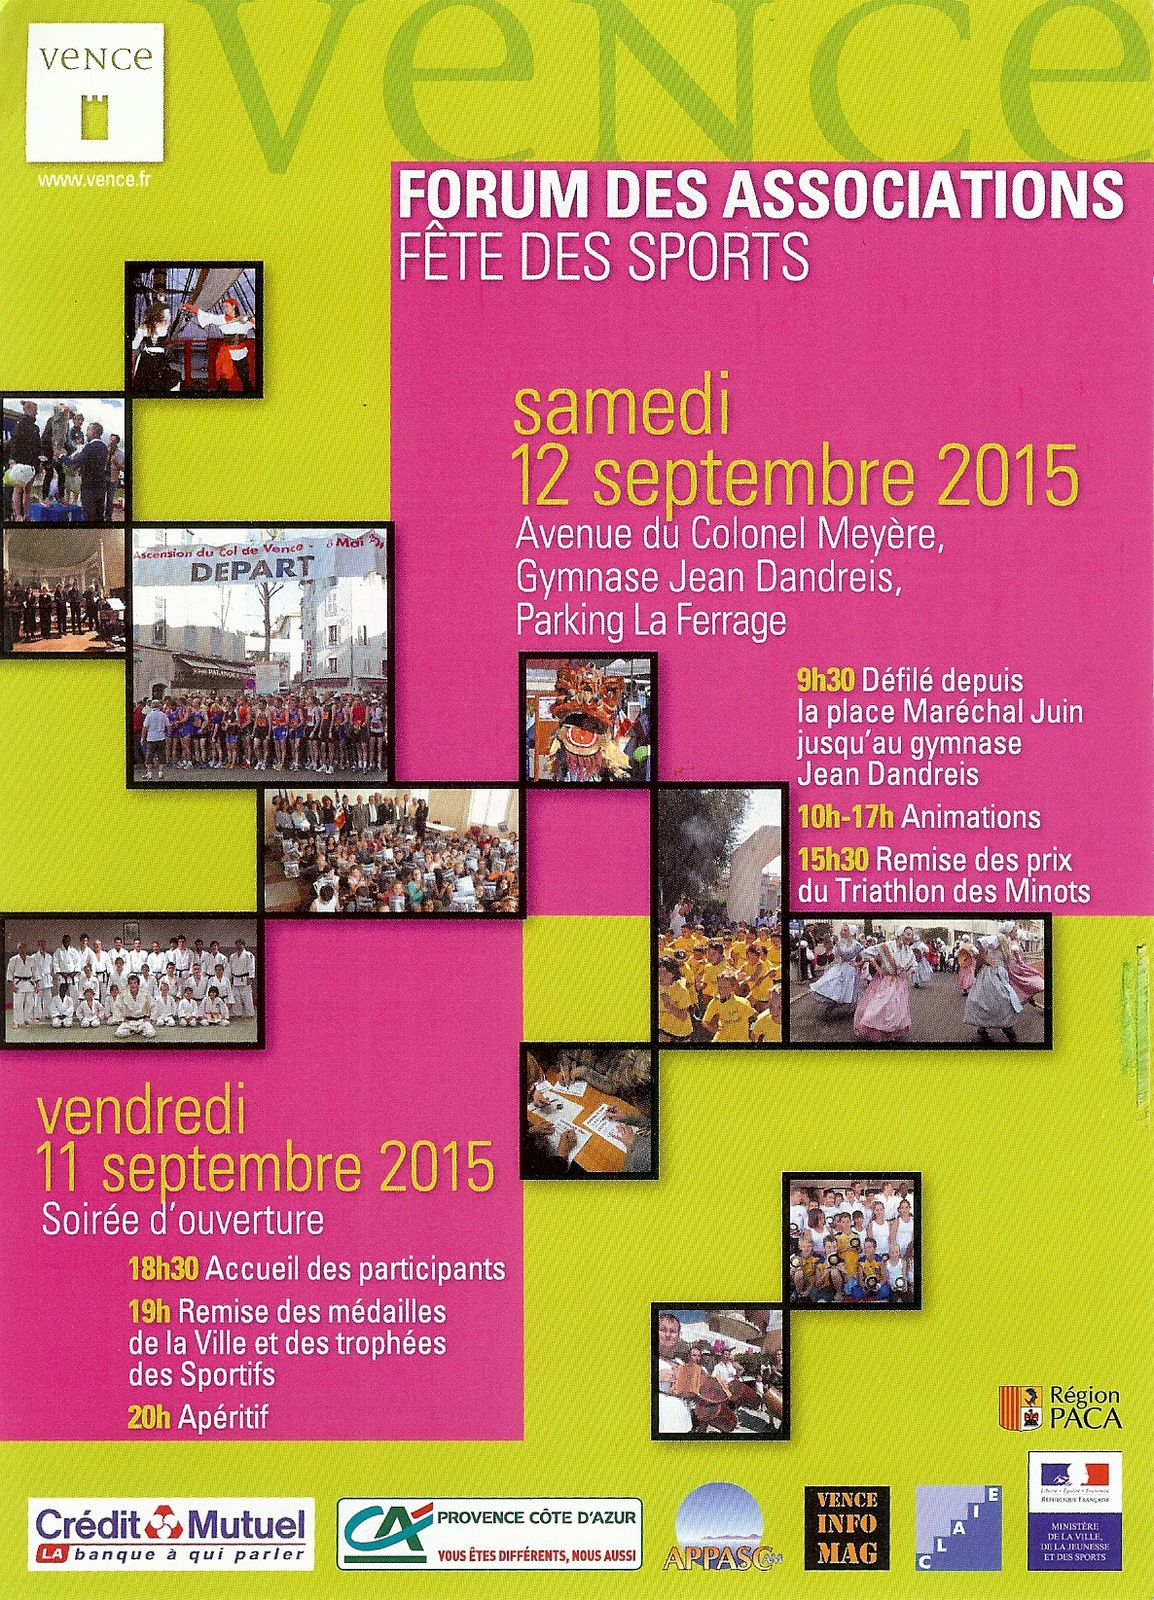 La Brissaudo au Forum des Associations de Vence le 12/09/2015